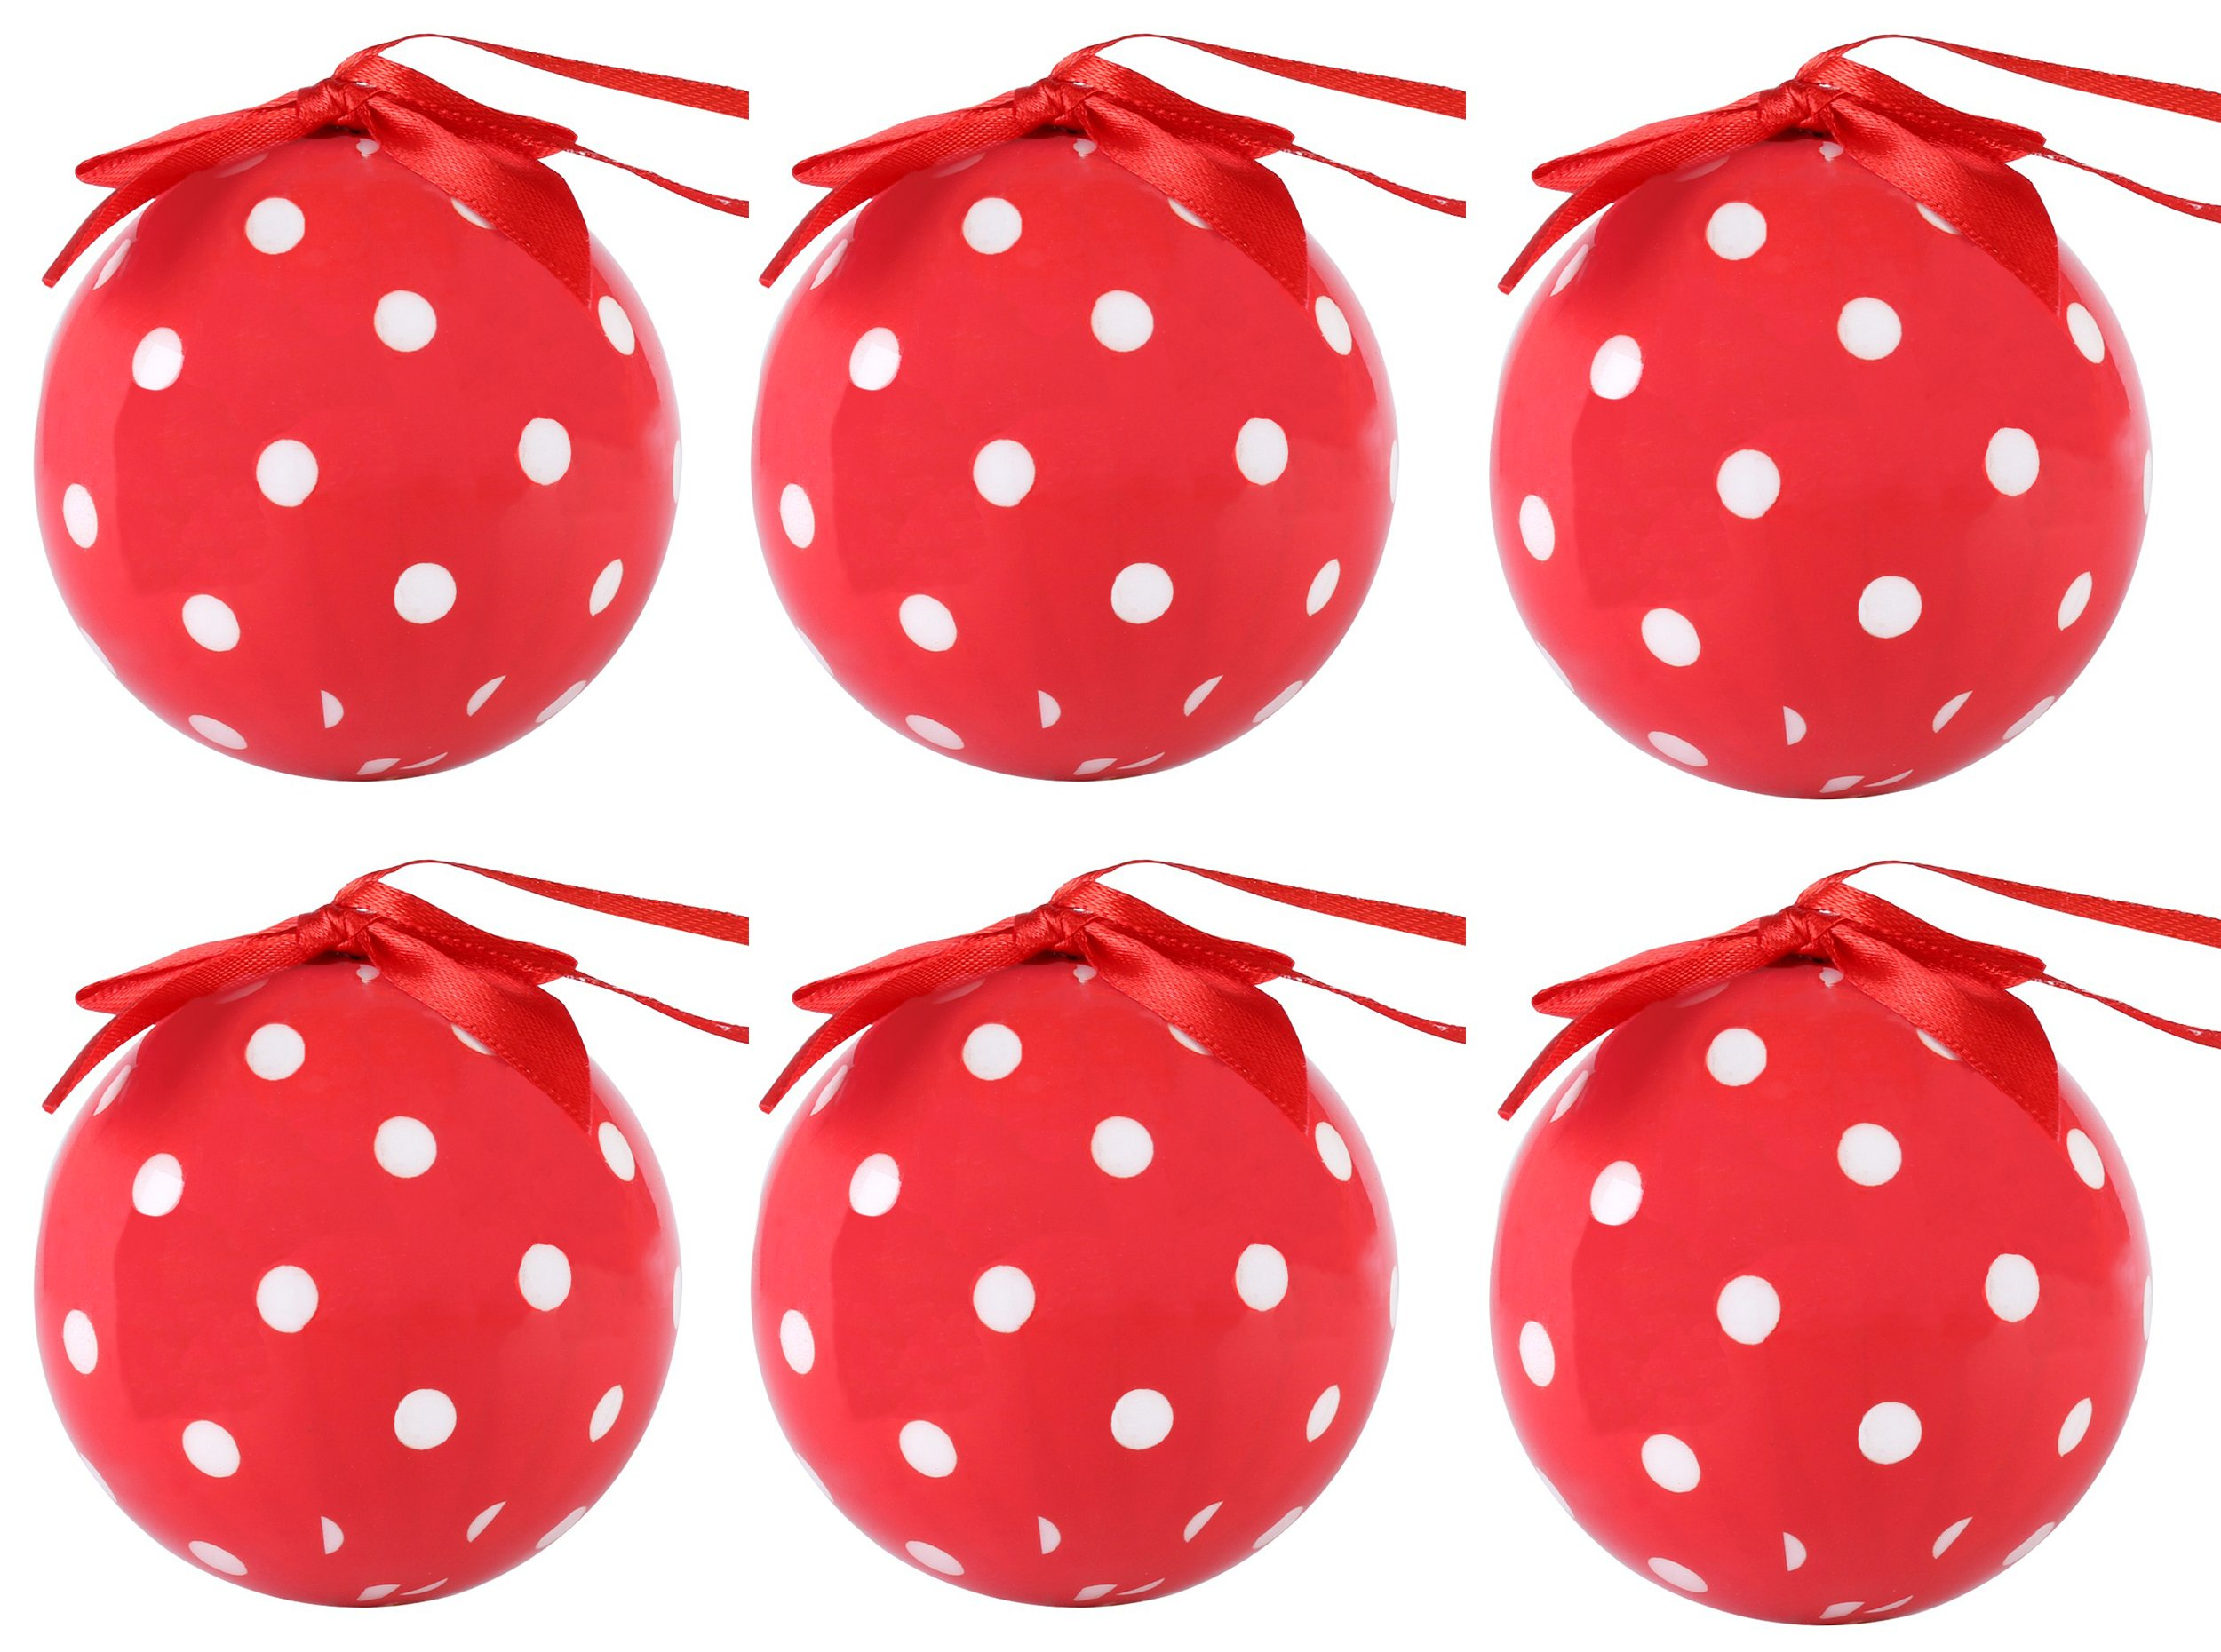 Cue Cue Festive Ready to Hang 24 Peice Red with White Polka Dots Ornament Set